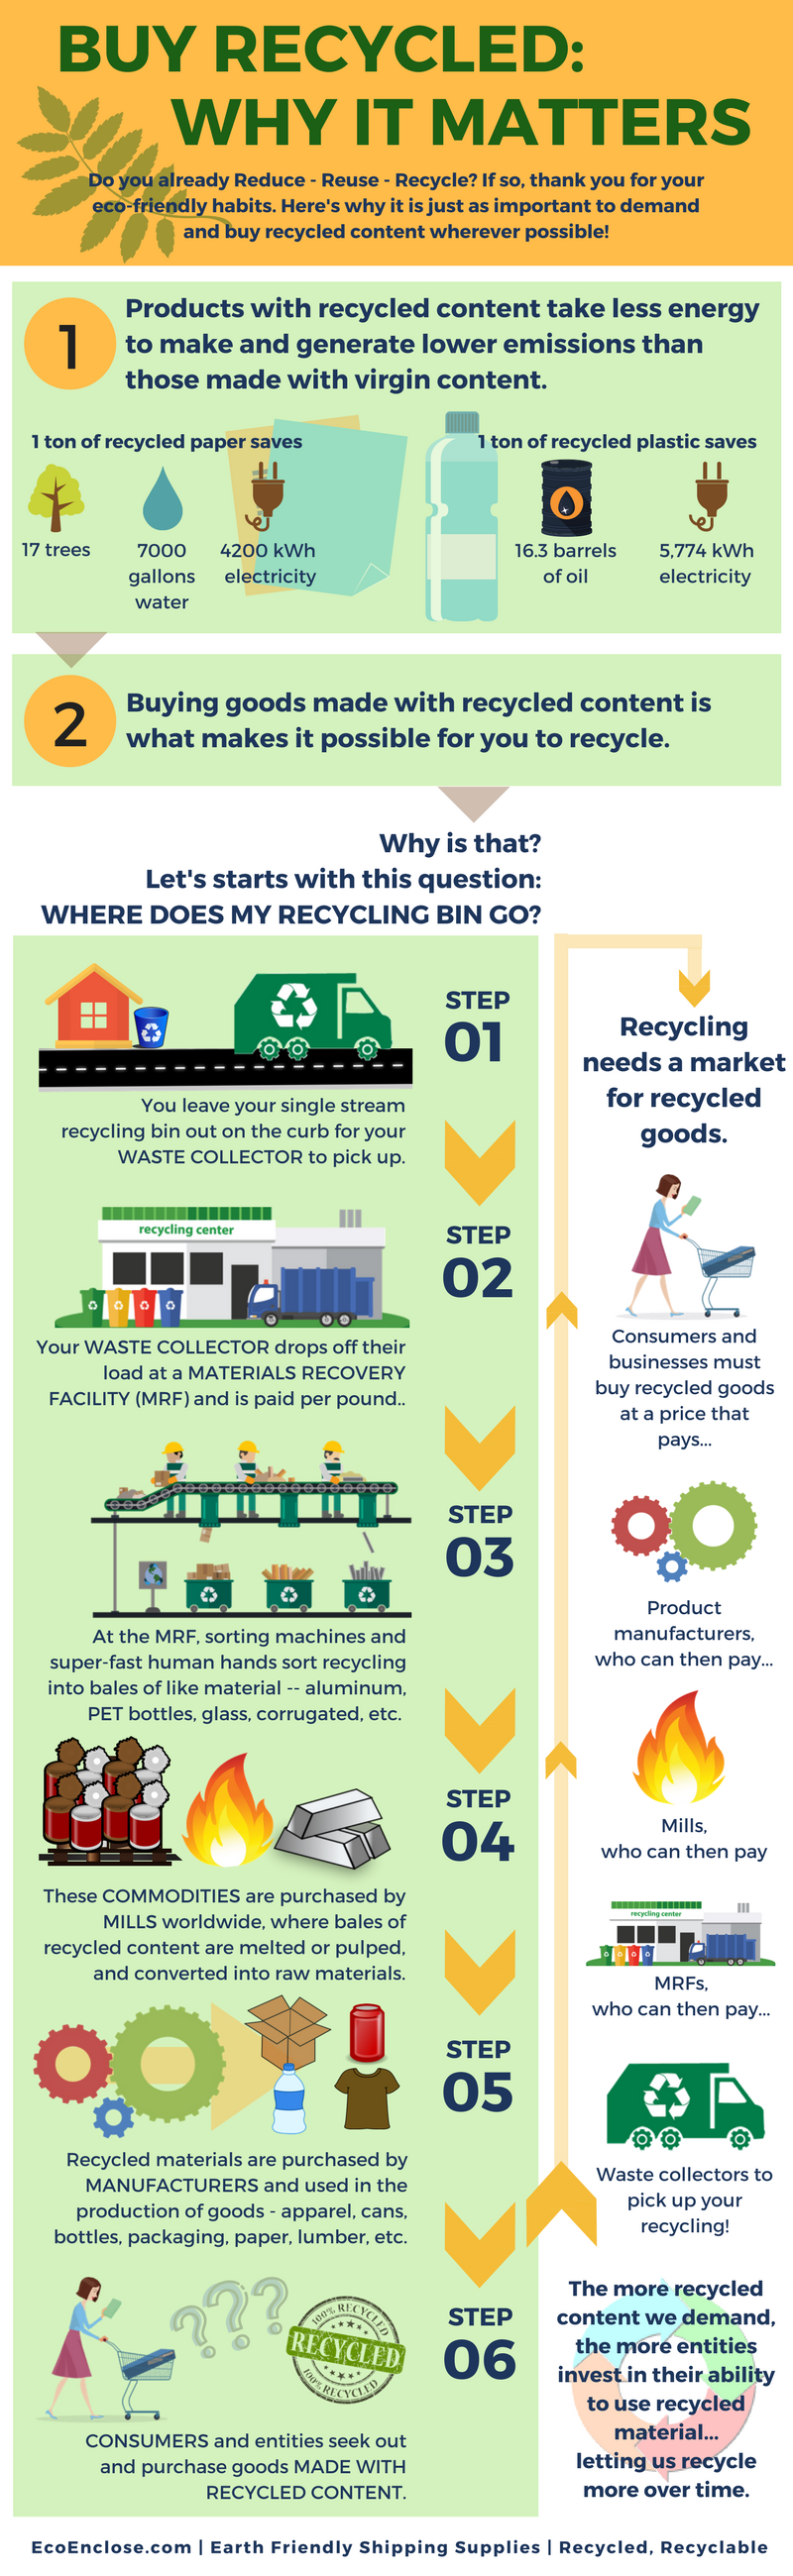 Why Buying Recycled Content Matters